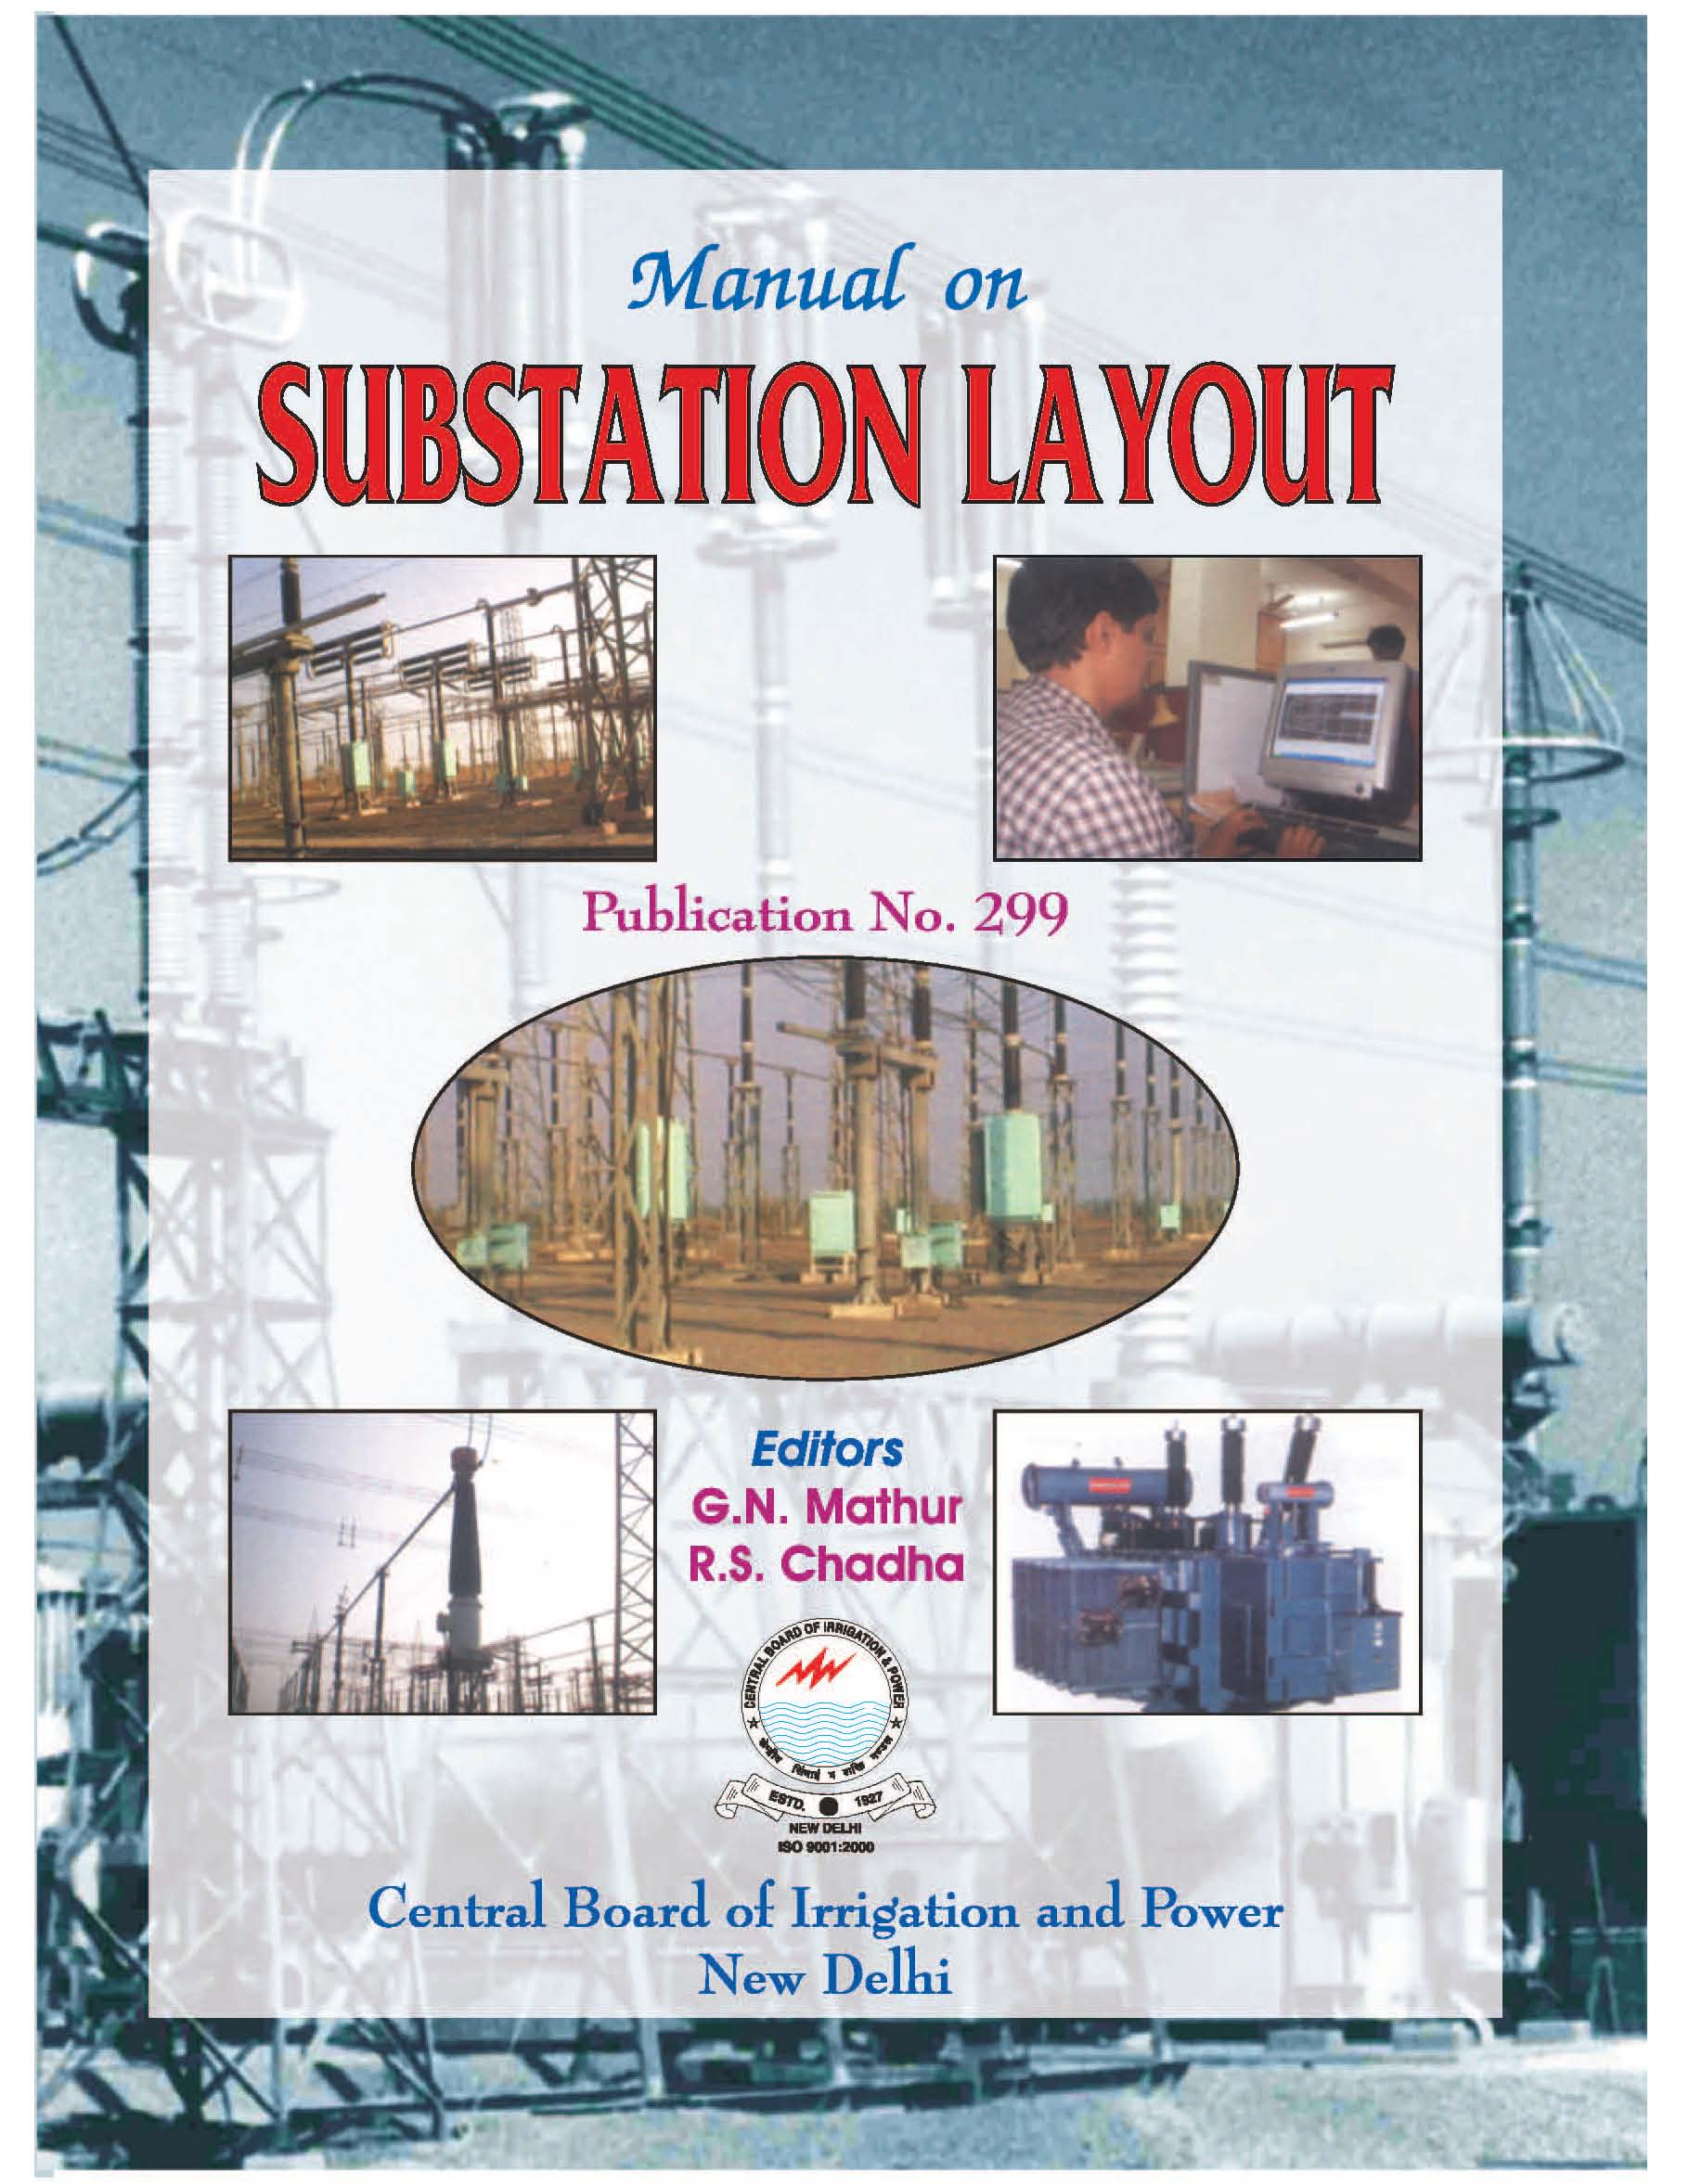 central board of irrigation and power rh cbippublication org Electrical Substation Transformer Maintenance ehv substation maintenance manual